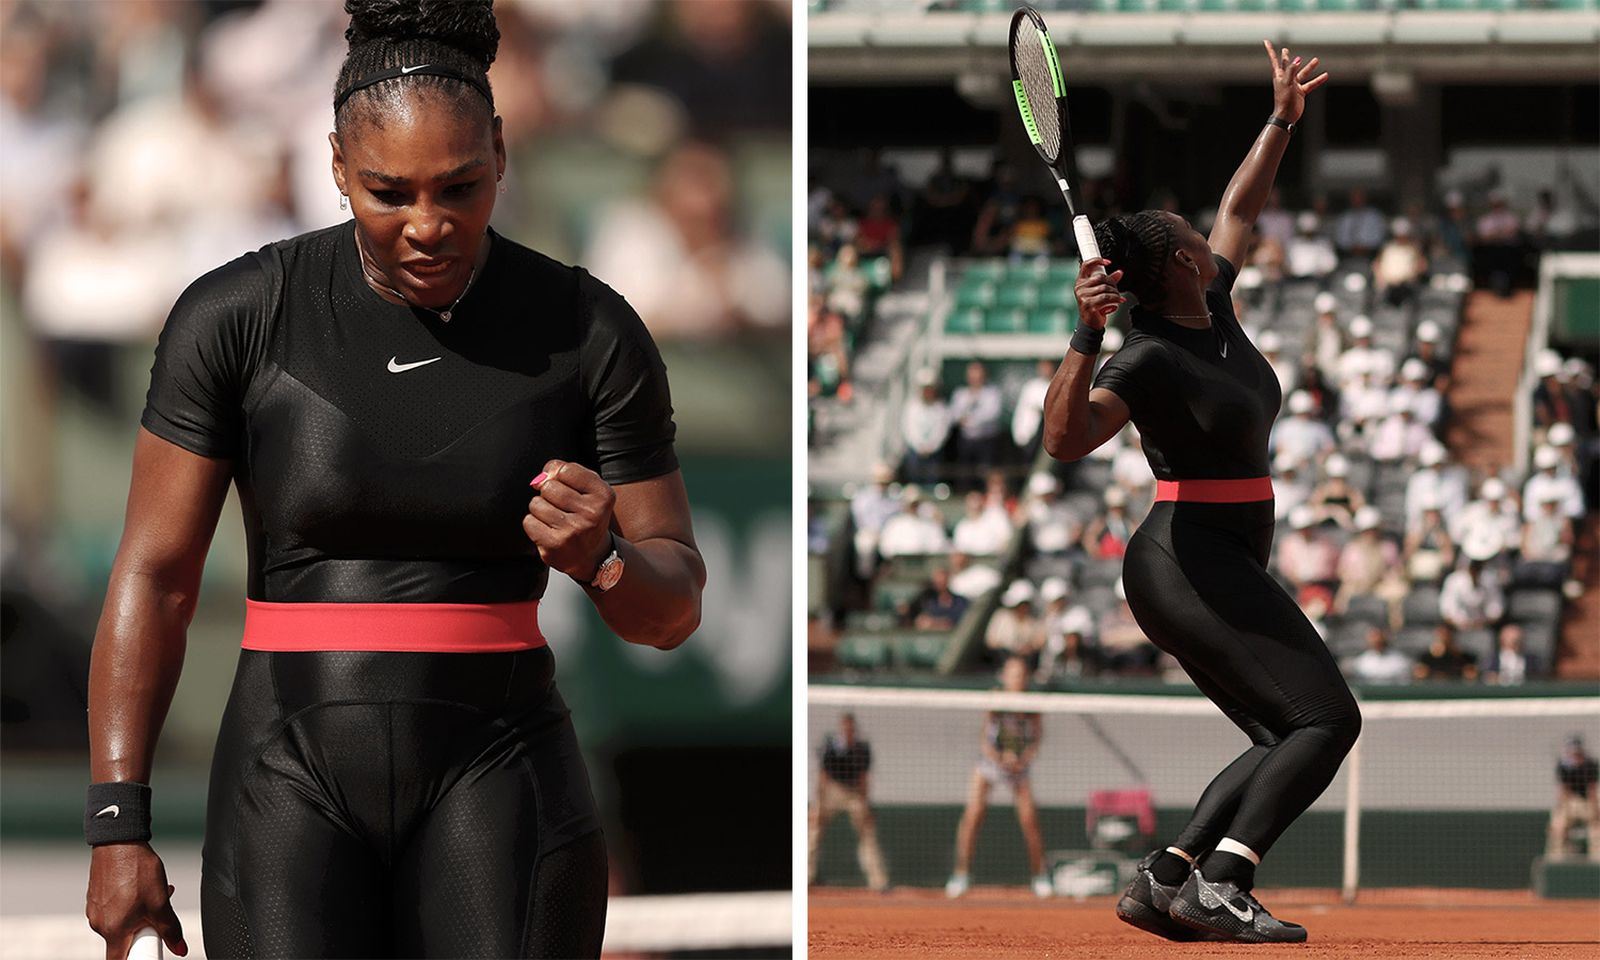 serena williams catsuit french open rule change Nike